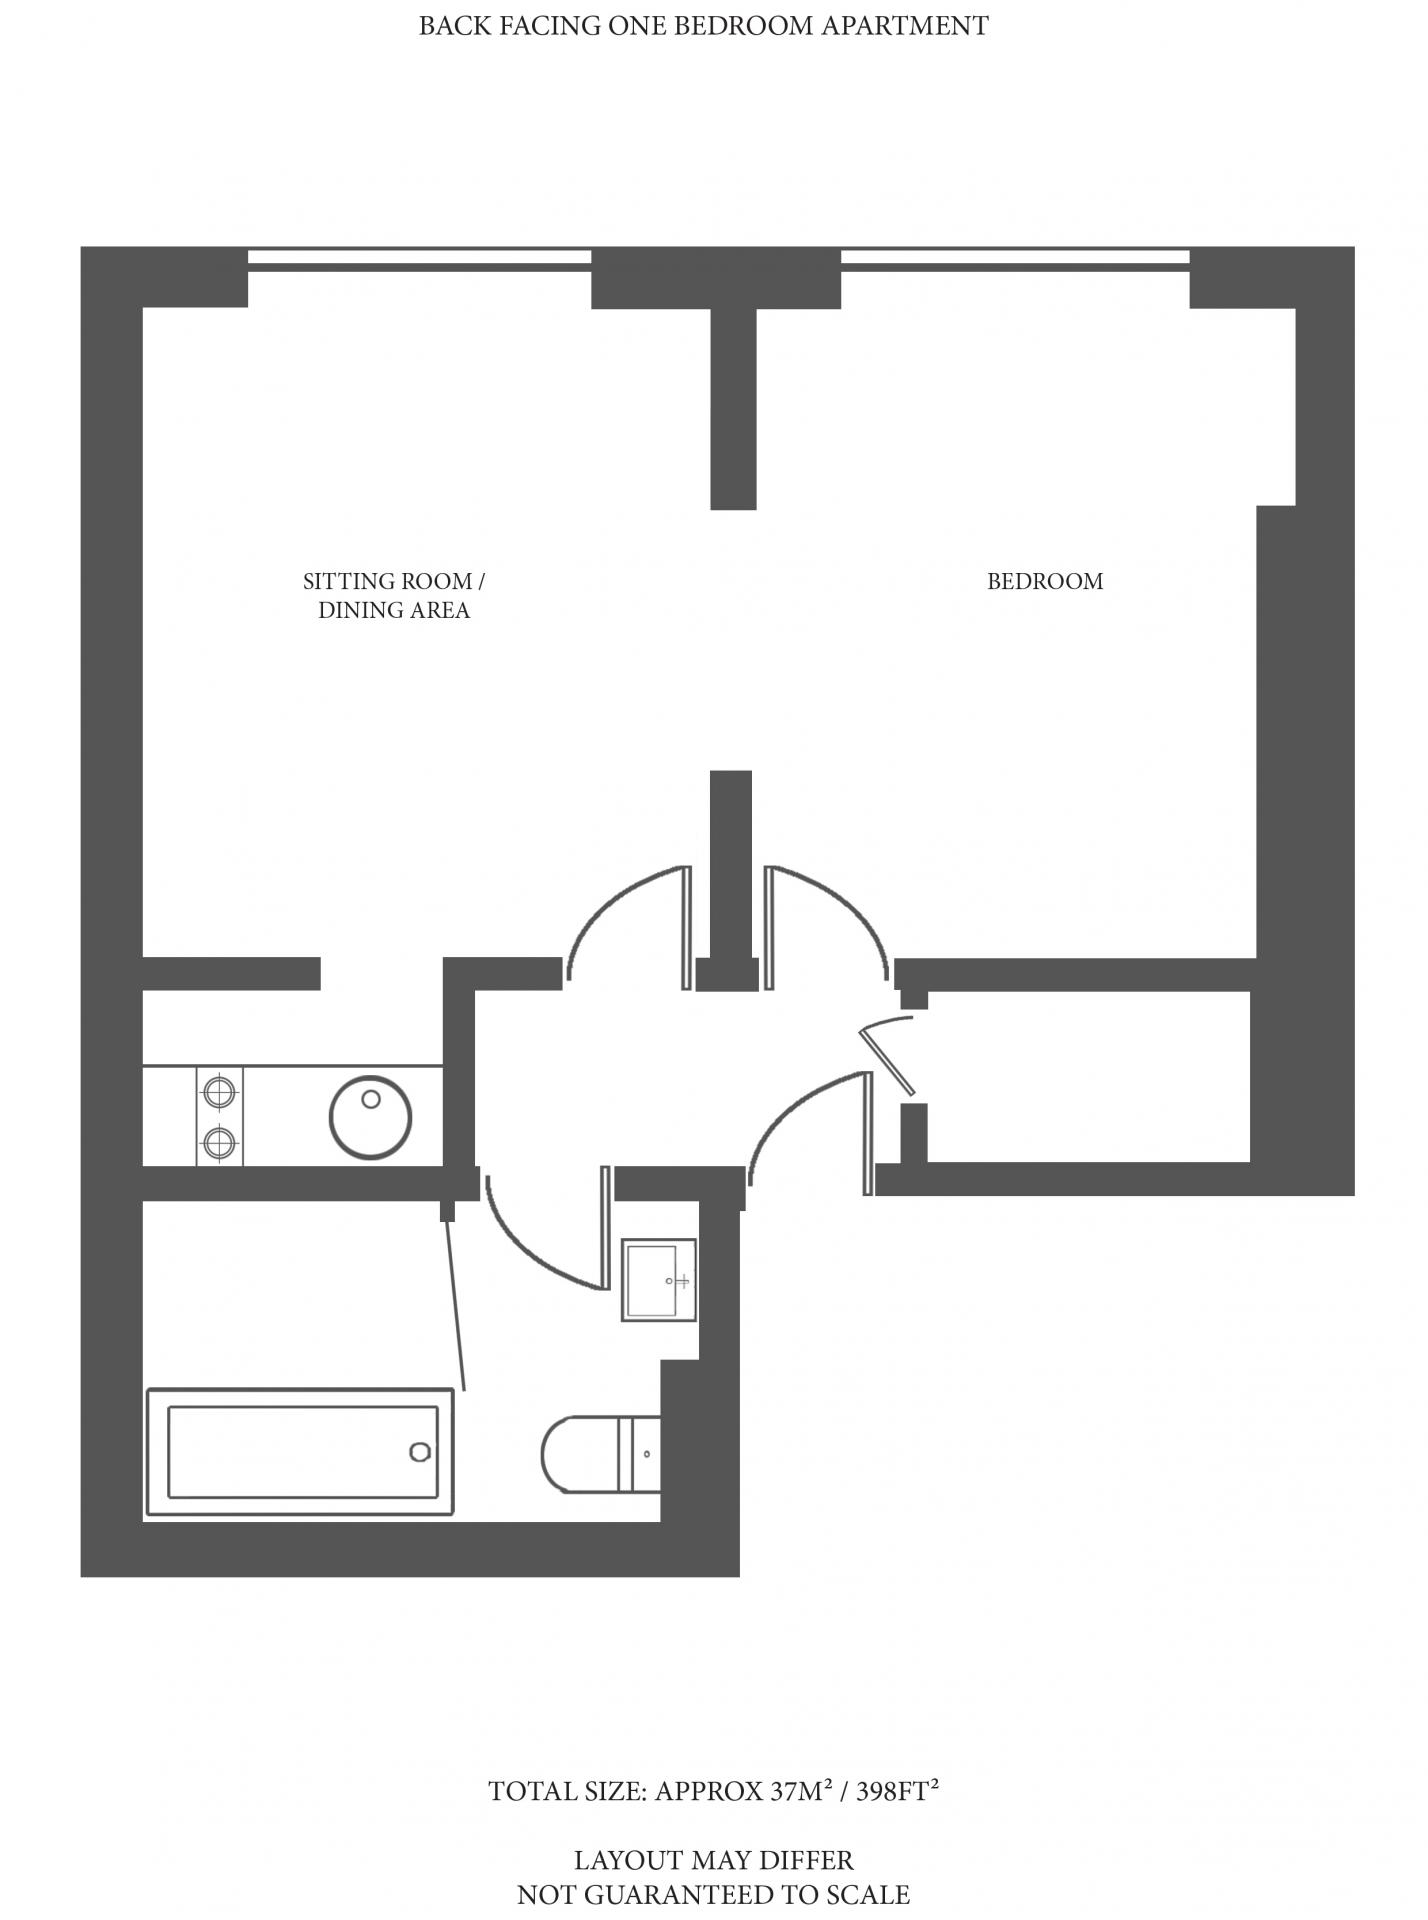 Floorplan 5 at The Capital Hotel Knightsbridge